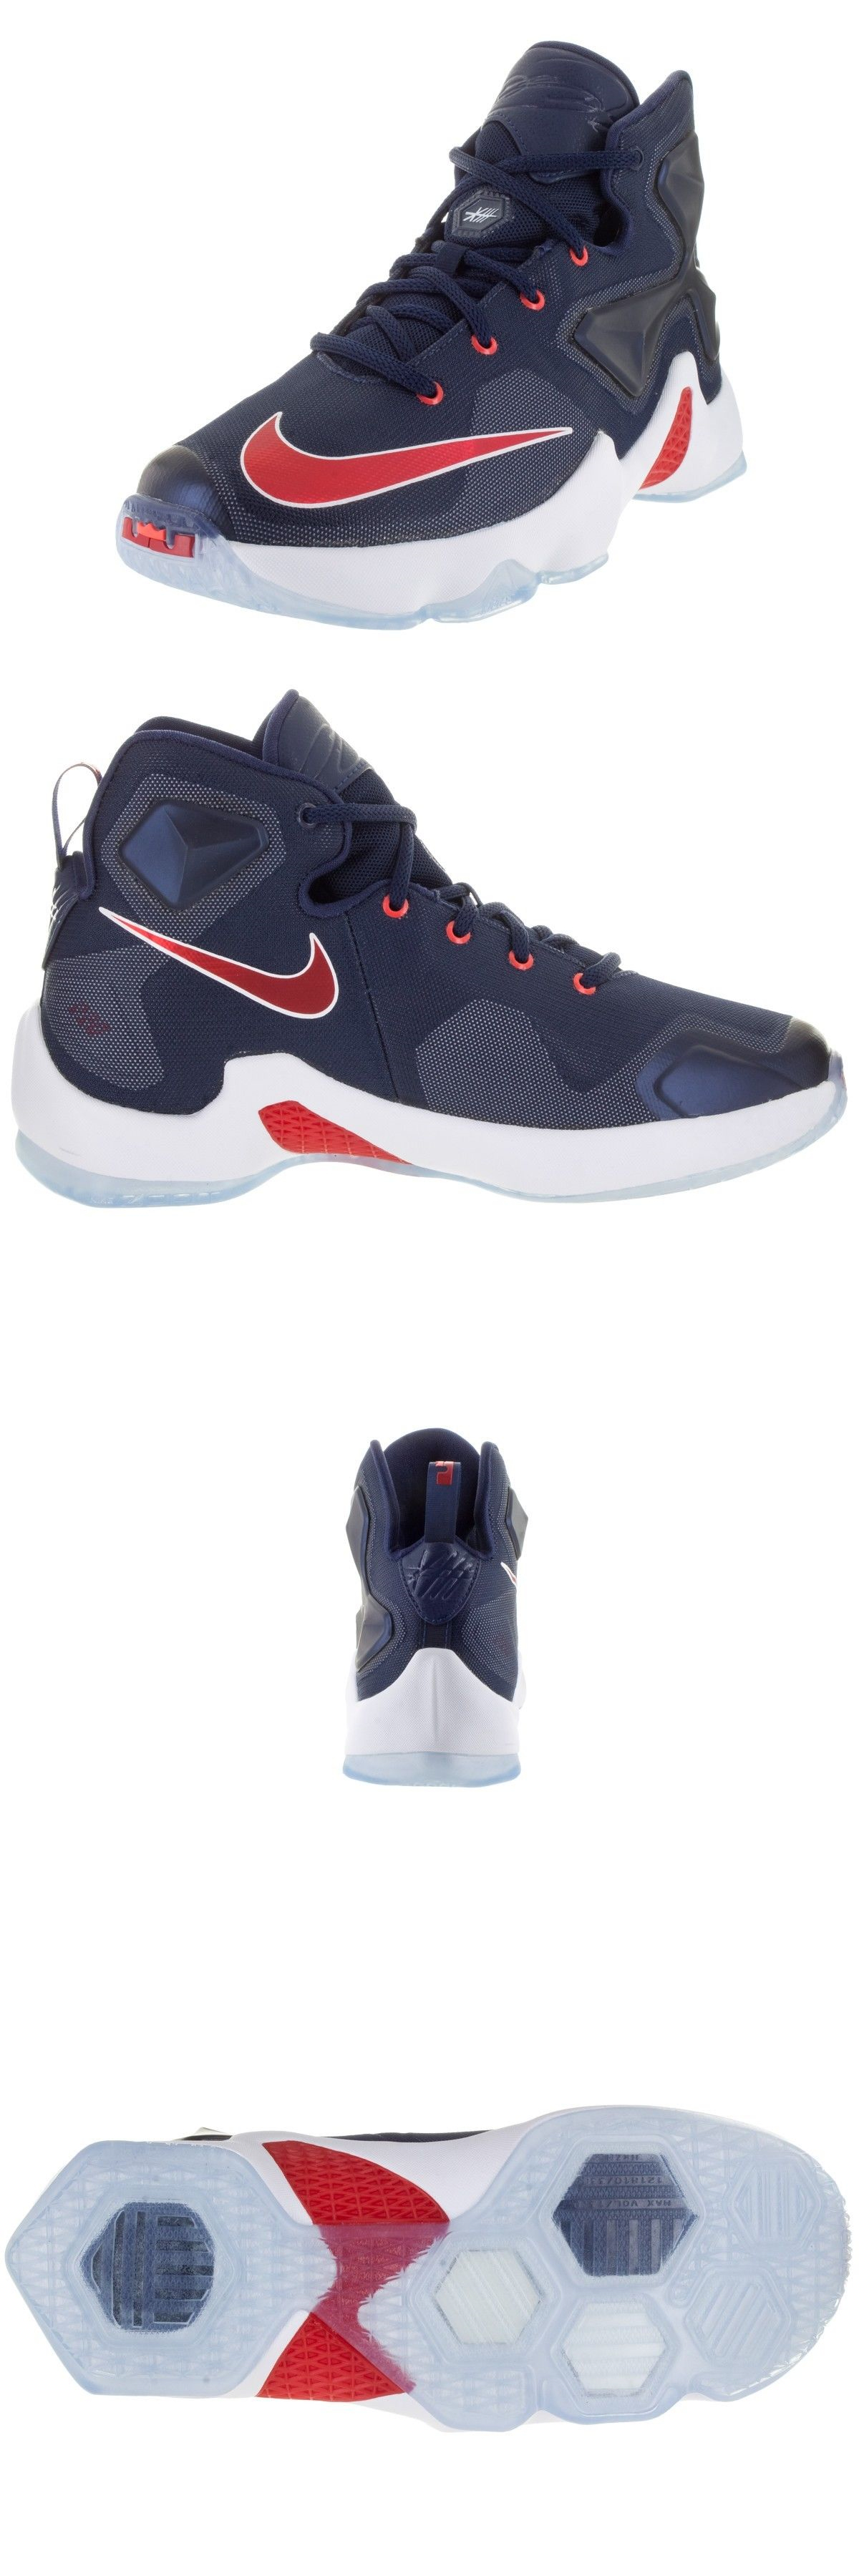 timeless design 2a32a ef553 Youth 158973 Nike 808709-461 Lebron Xiii Usa Red Blue Basketball Shoes  Youth Sz